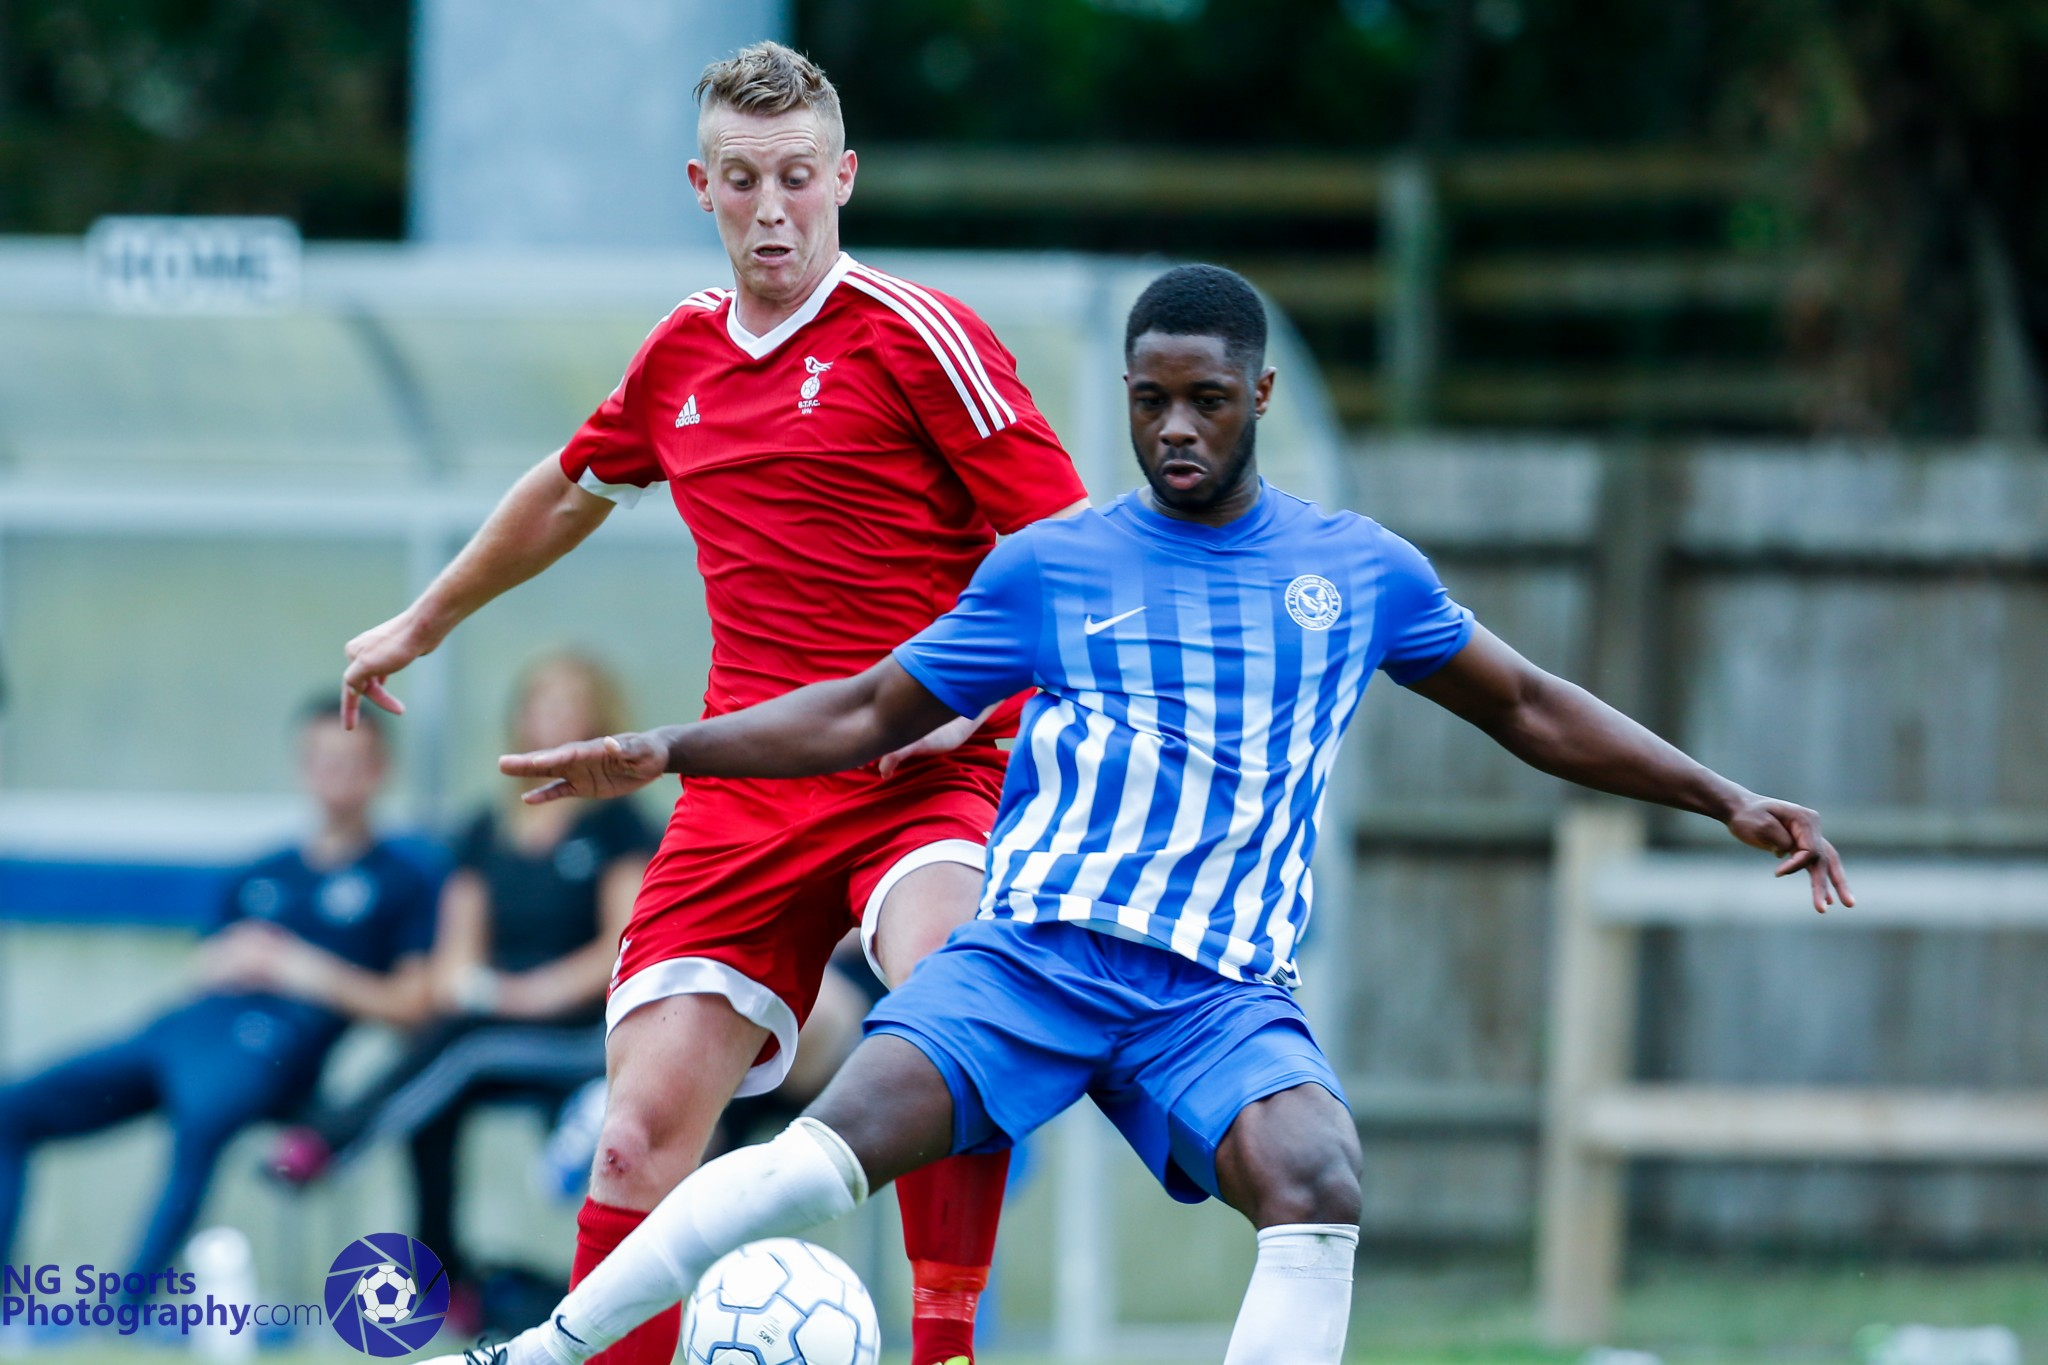 Weekend: Bracknell Town's final 'home' game, Woodley and Finchampstead try again